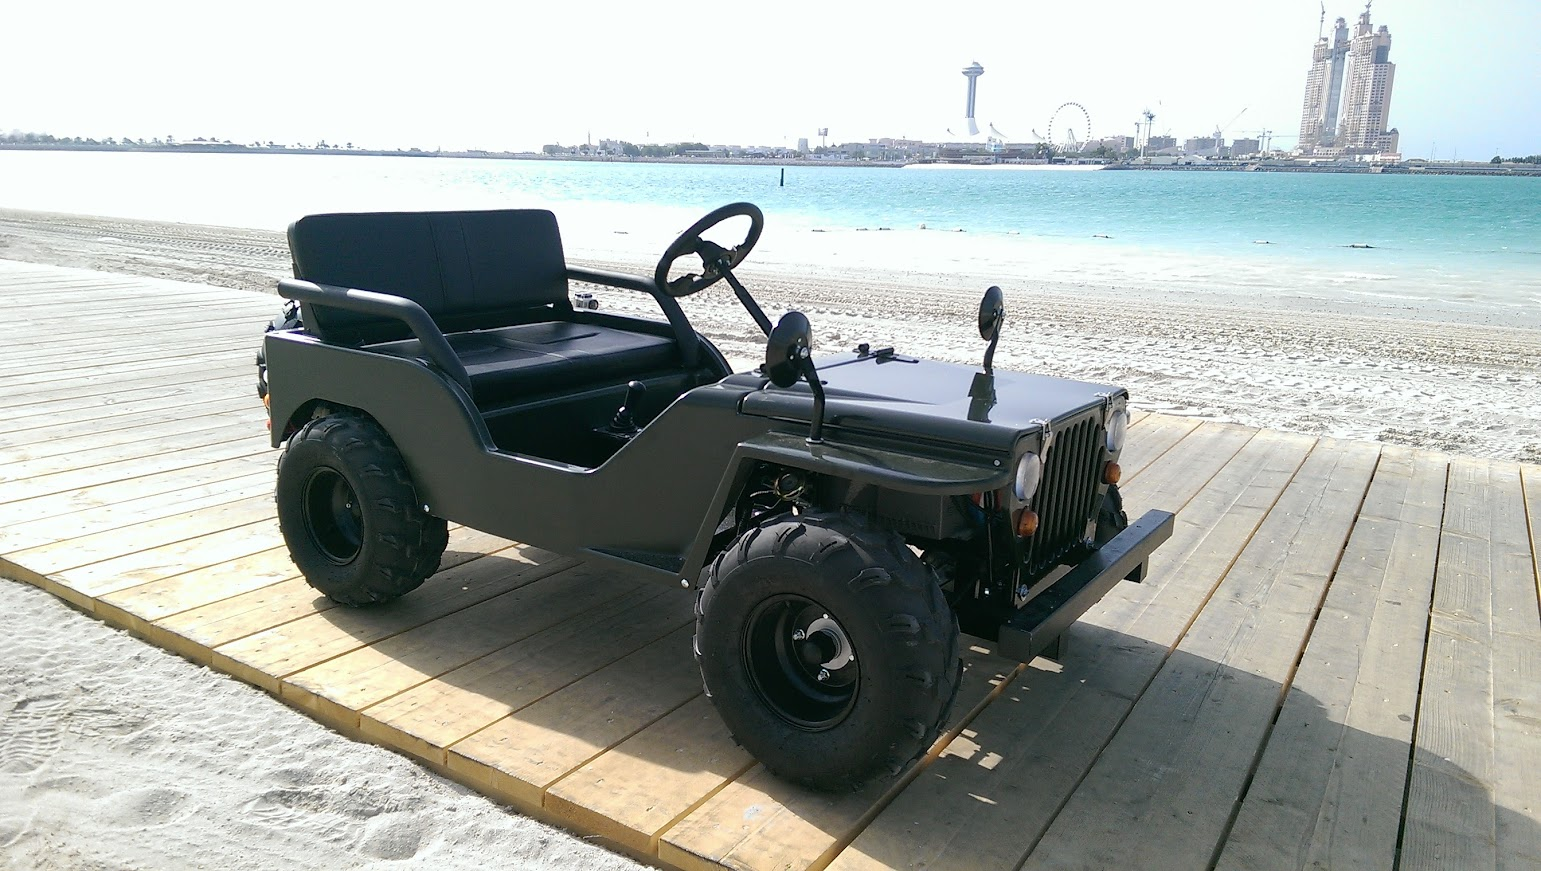 Electric Mini Army Jeep 1500w UAE Abu Dhabi Mother of Nation festival